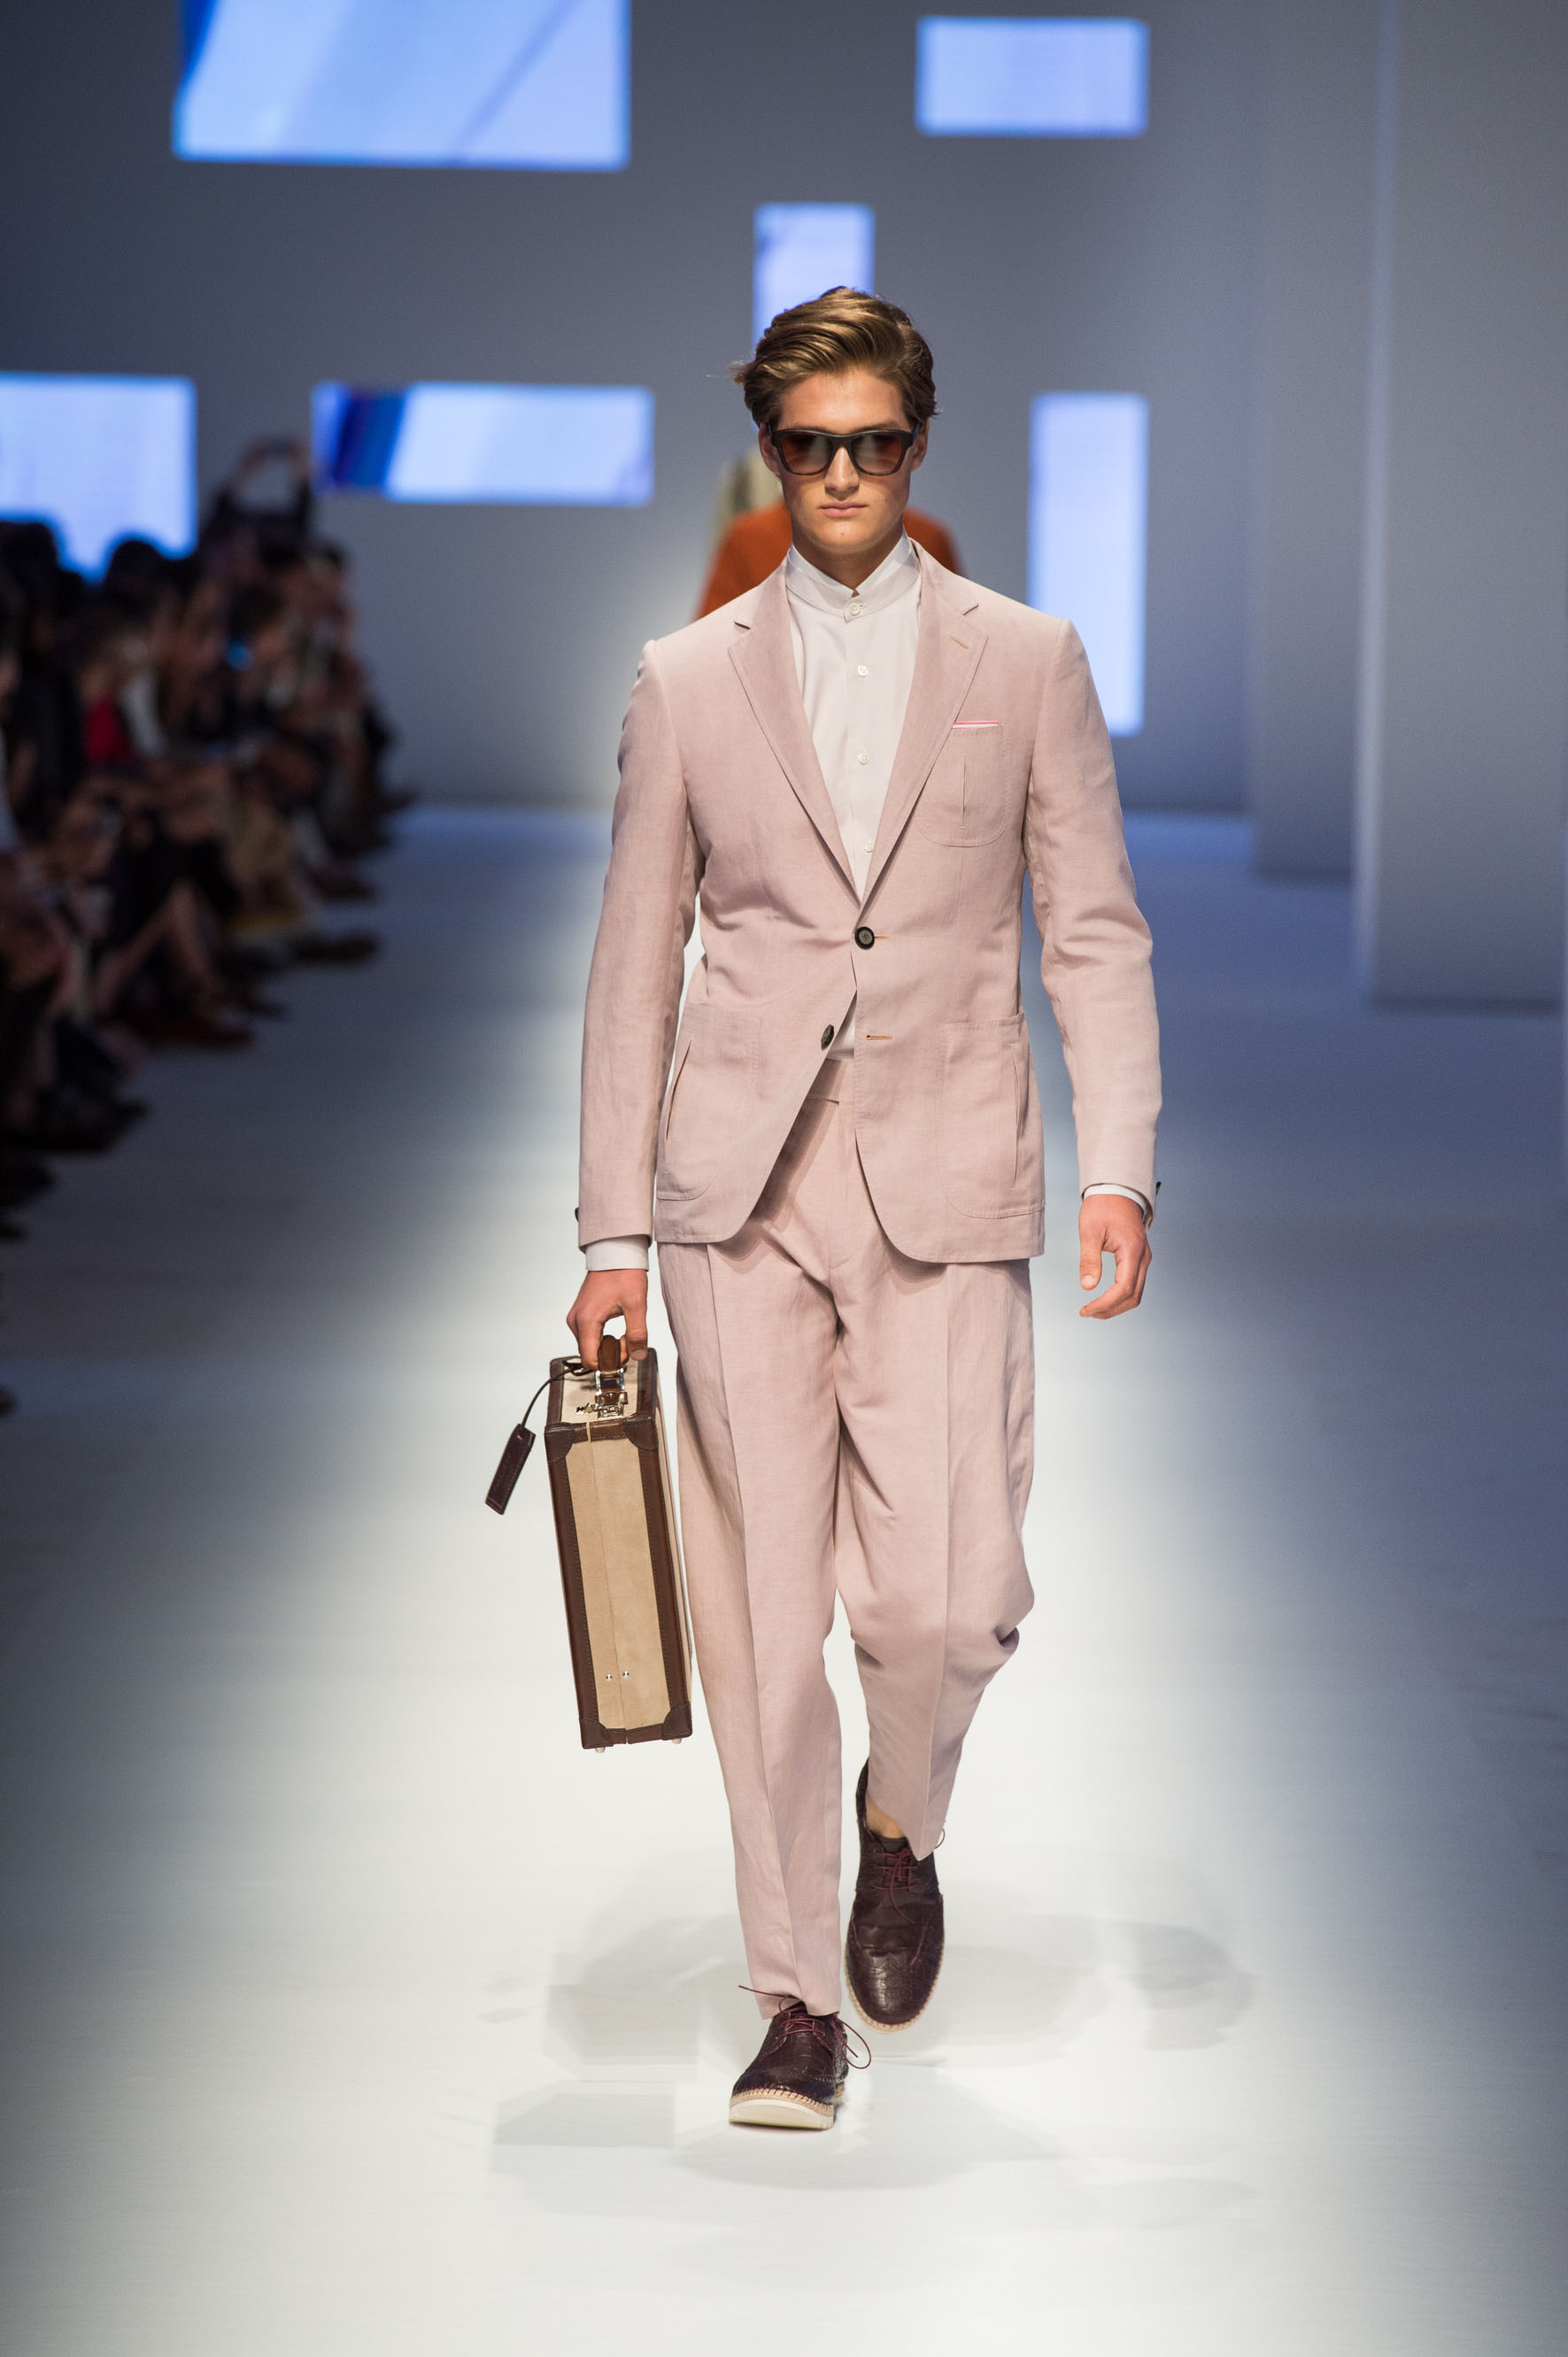 Two-button linen-silk jacket, reverse-pleated pants with belt, crocodile lace-up esapdrilles, briefcase with stripe